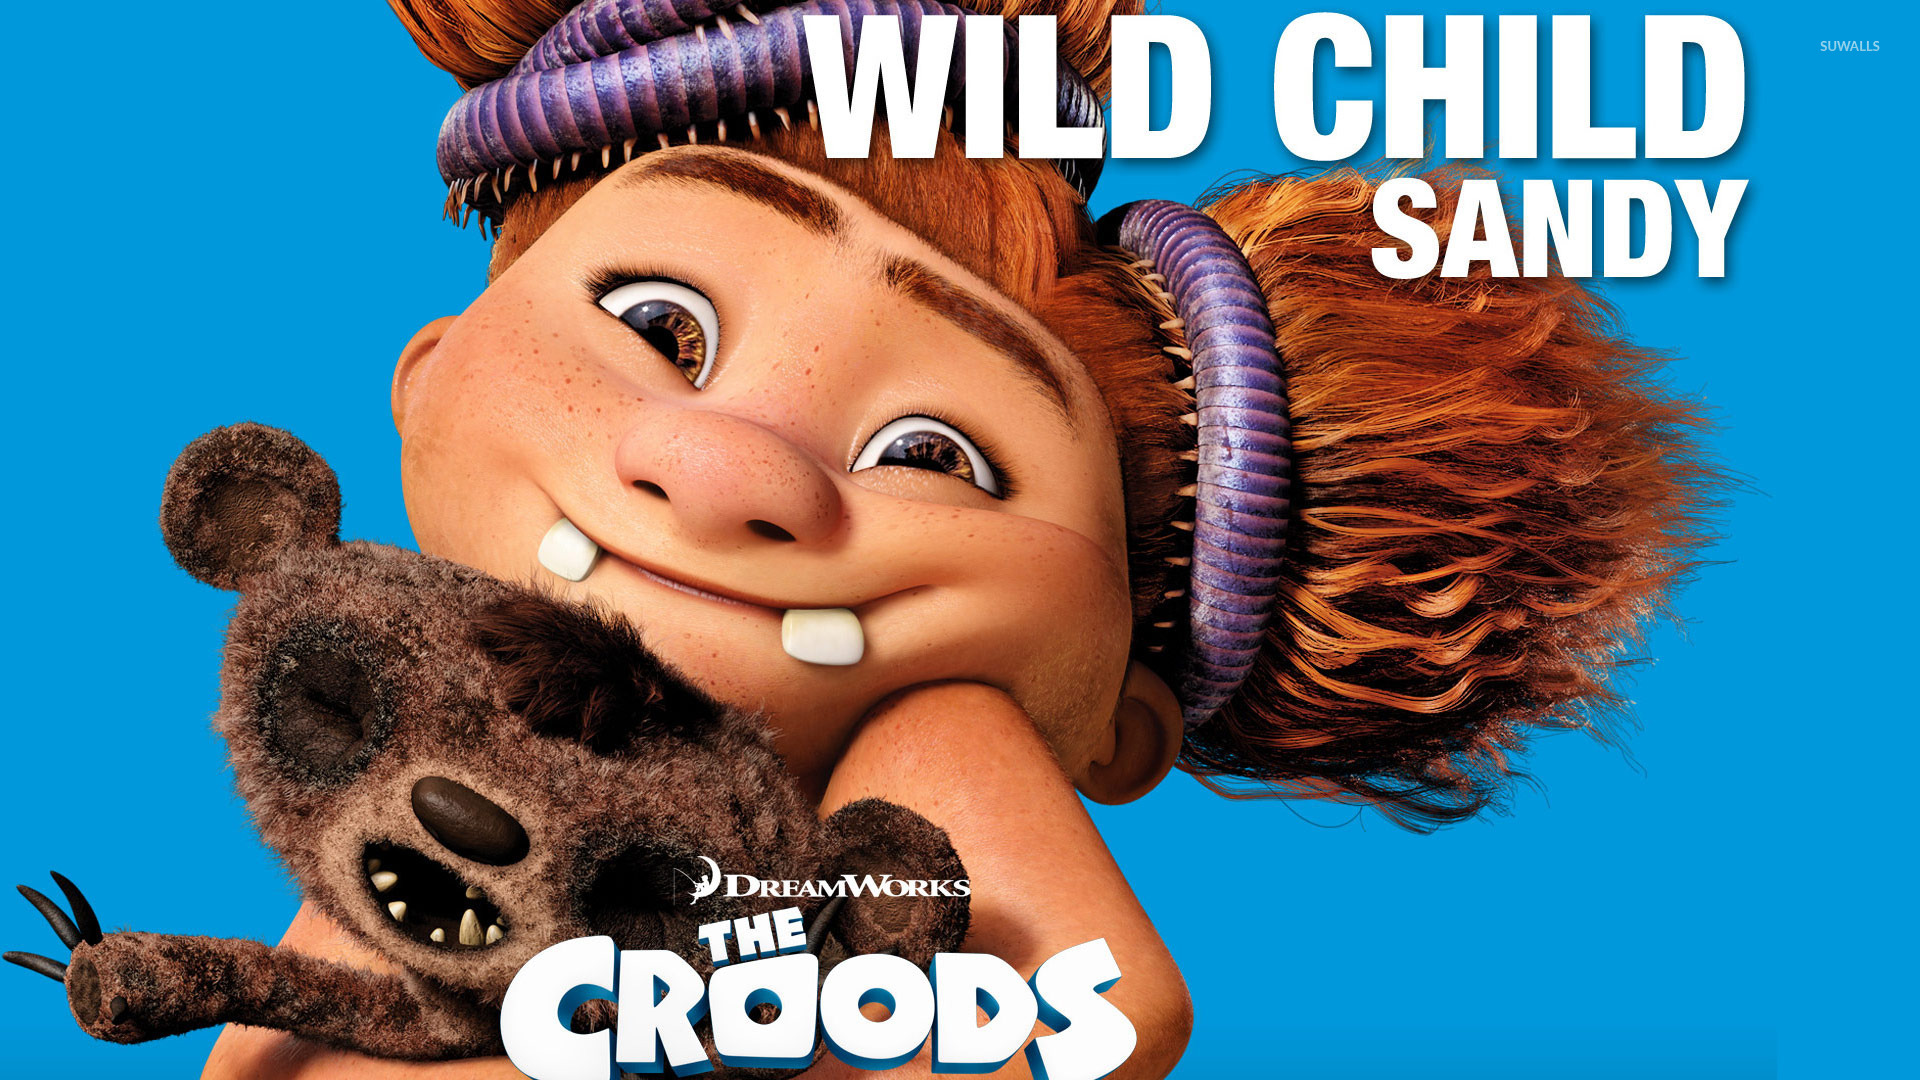 Sandy the croods wallpaper cartoon wallpapers 19163 sandy the croods wallpaper voltagebd Gallery